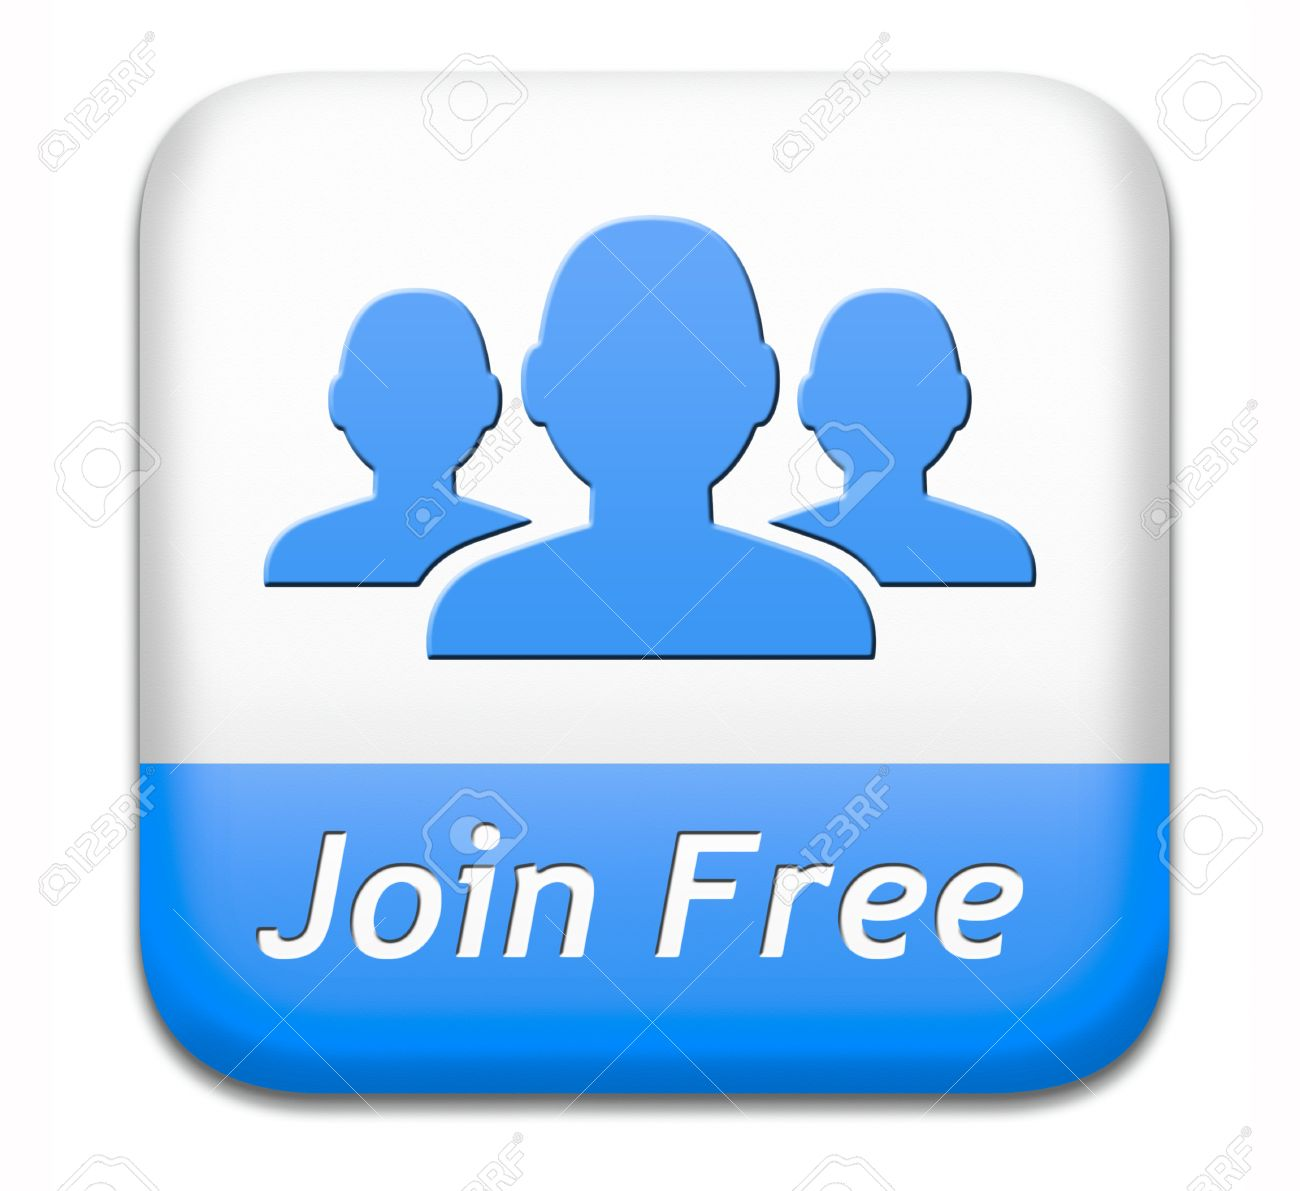 join no registration fee join today and become a member stock photo join no registration fee join today and become a member application icon button or sign